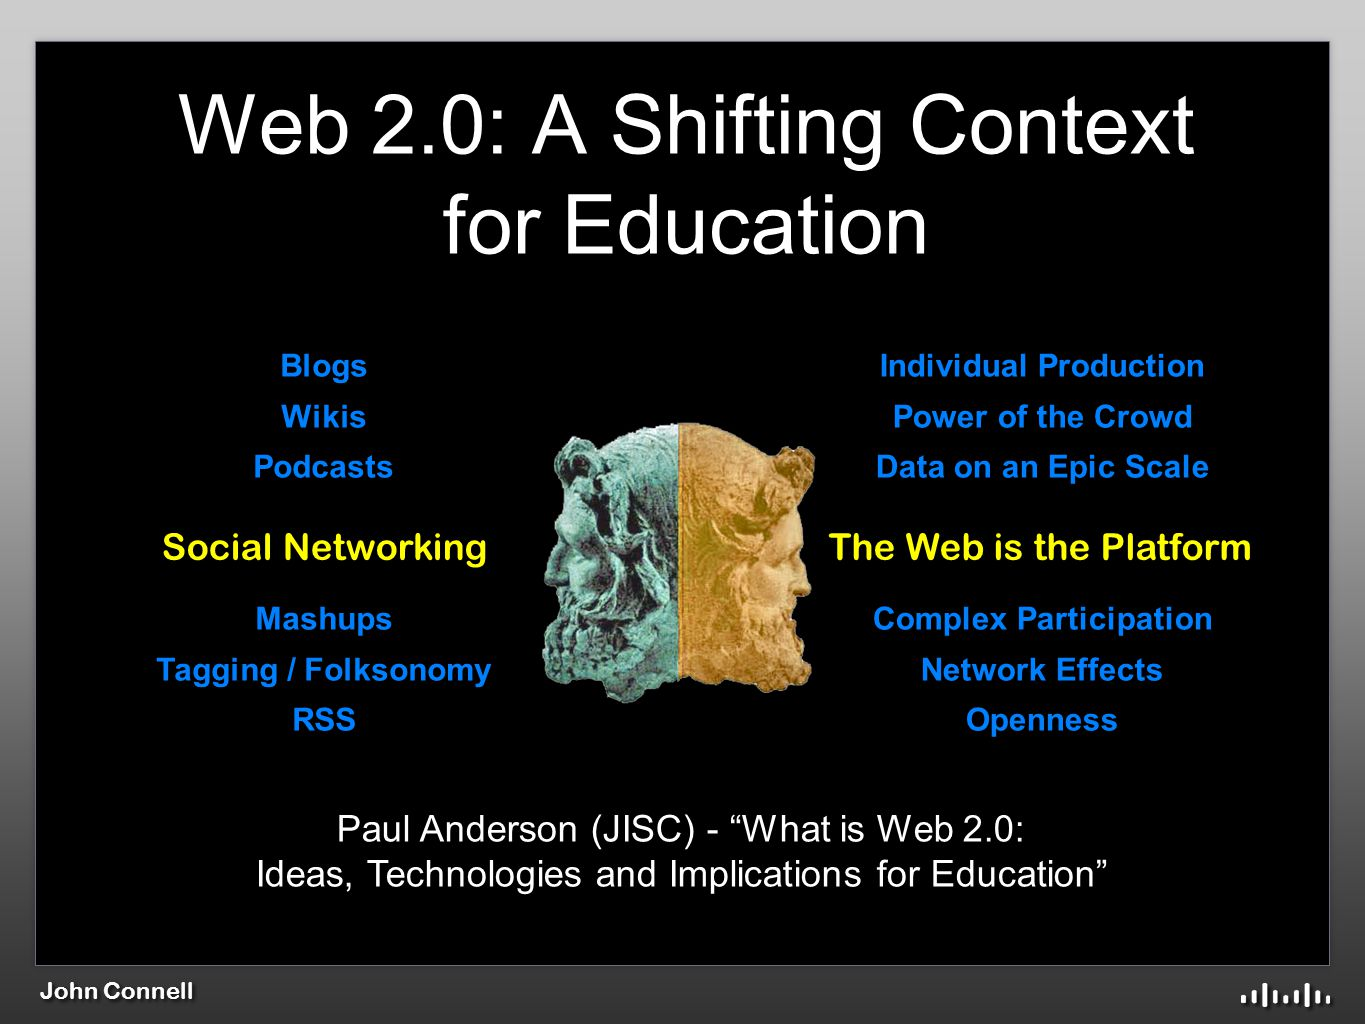 John Connell Individual Production Power of the Crowd Data on an Epic Scale Complex Participation Network Effects Openness Blogs Wikis Podcasts Mashups Tagging / Folksonomy RSS The Web is the PlatformSocial Networking Web 2.0: A Shifting Context for Education Paul Anderson (JISC) - What is Web 2.0: Ideas, Technologies and Implications for Education